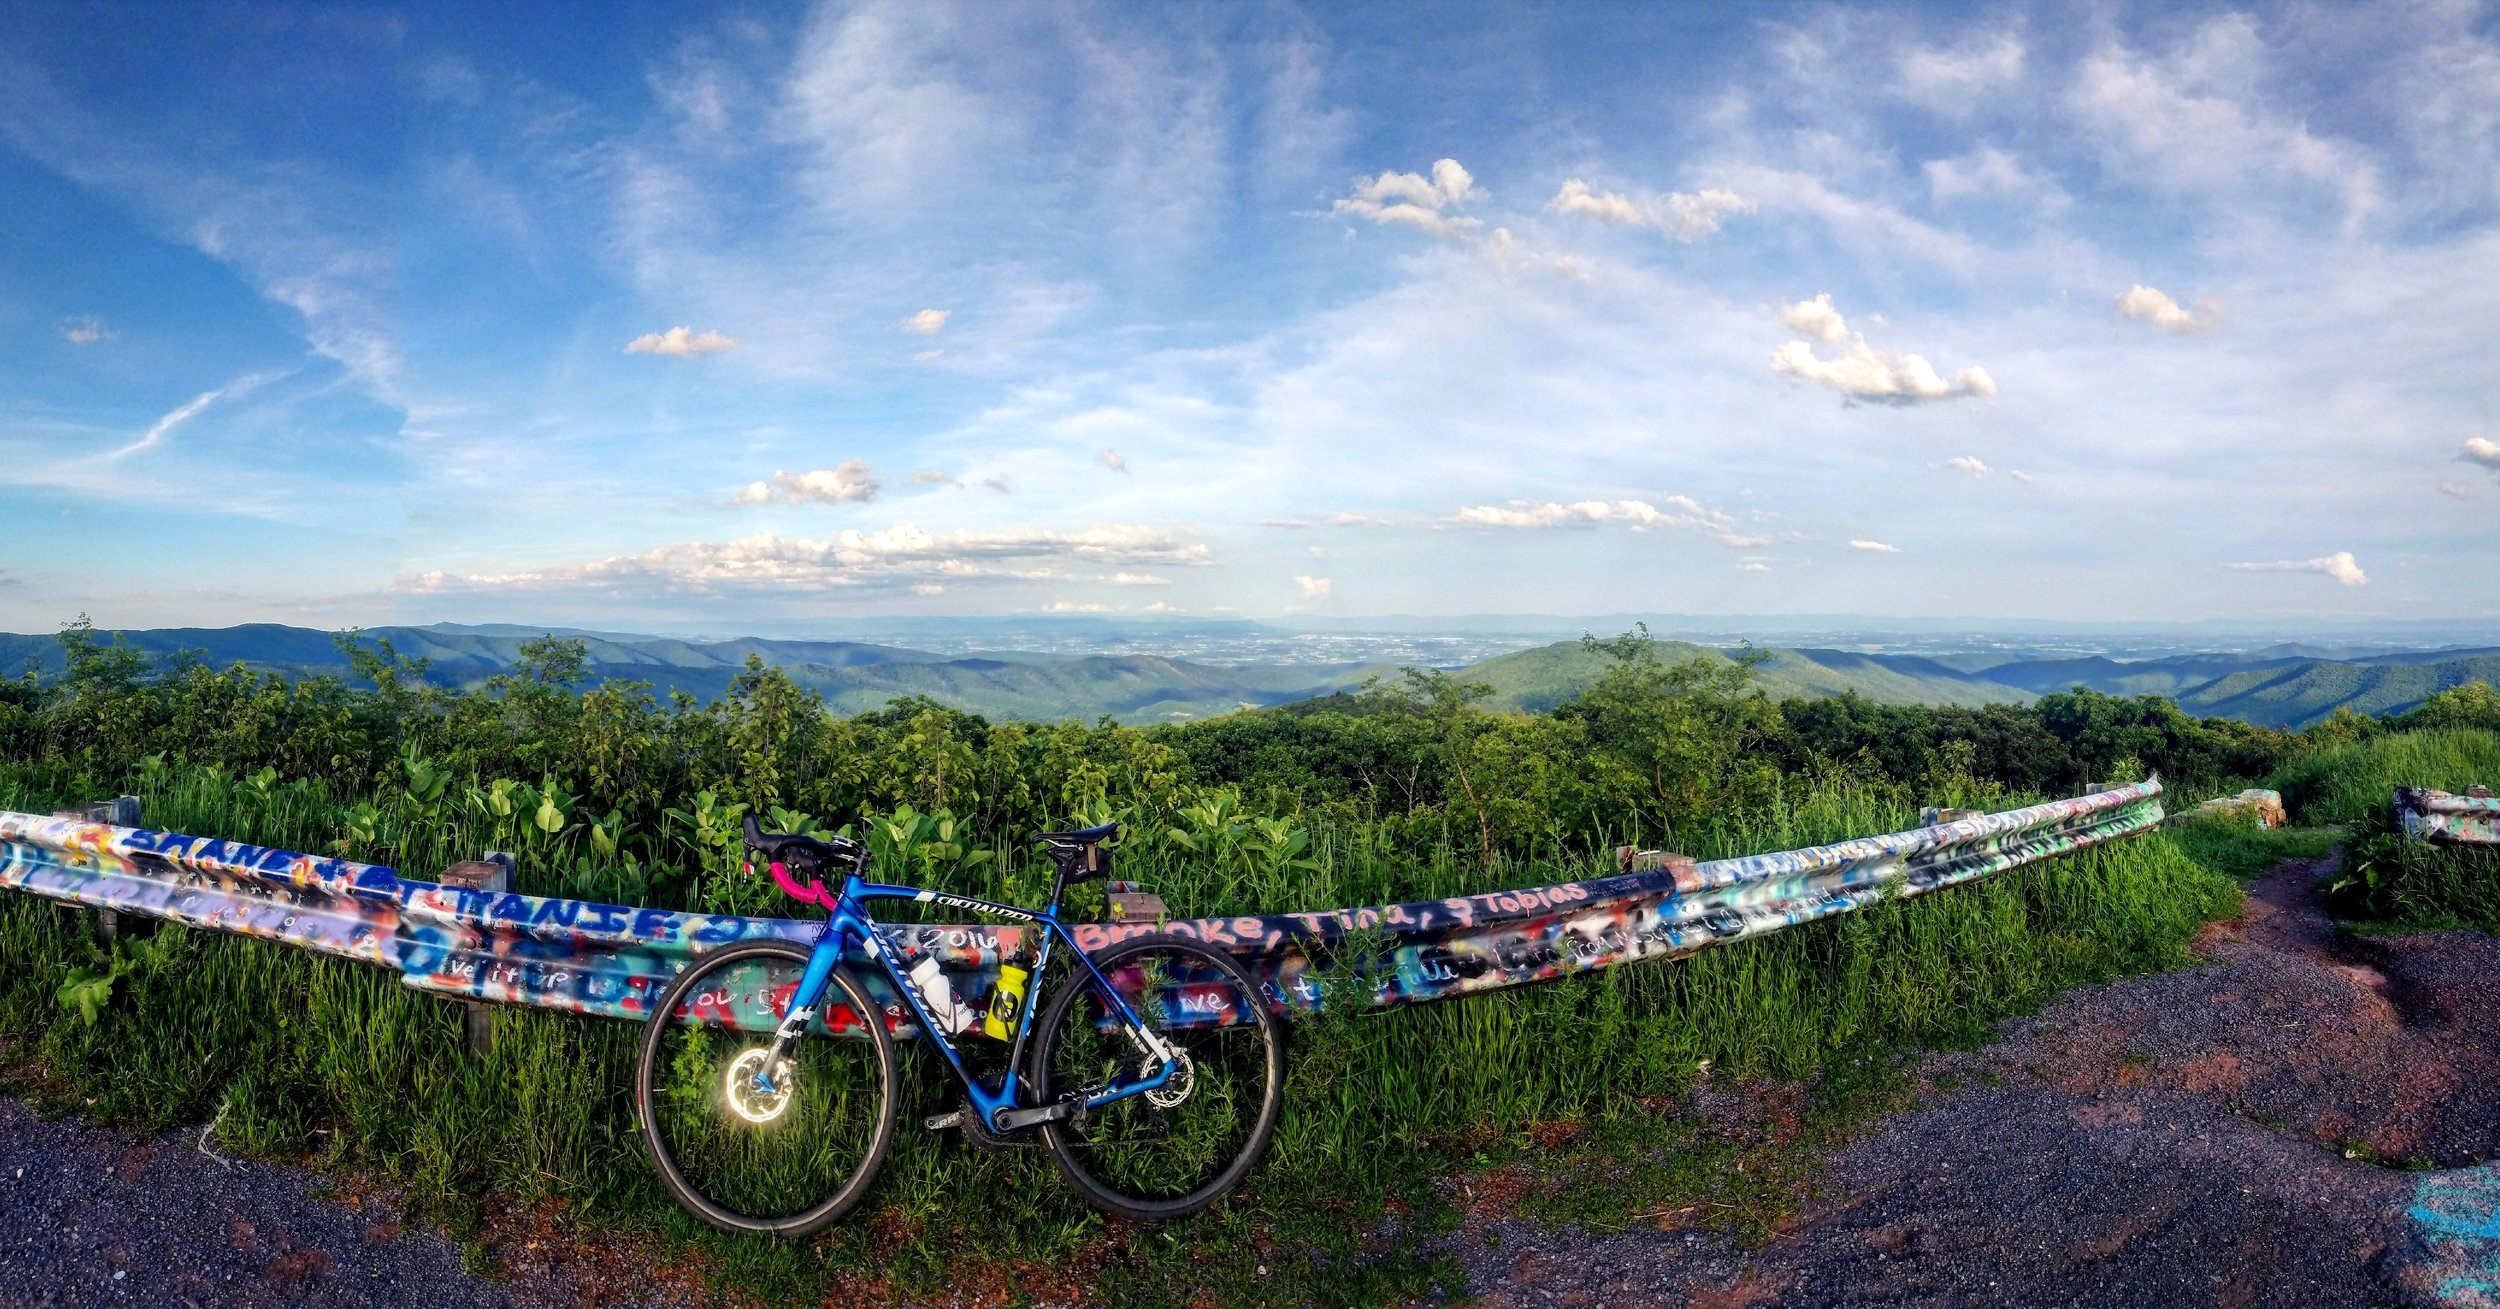 360 degree view of the Shenandoah Valley & West Virginia from the top of Reddish Knob.